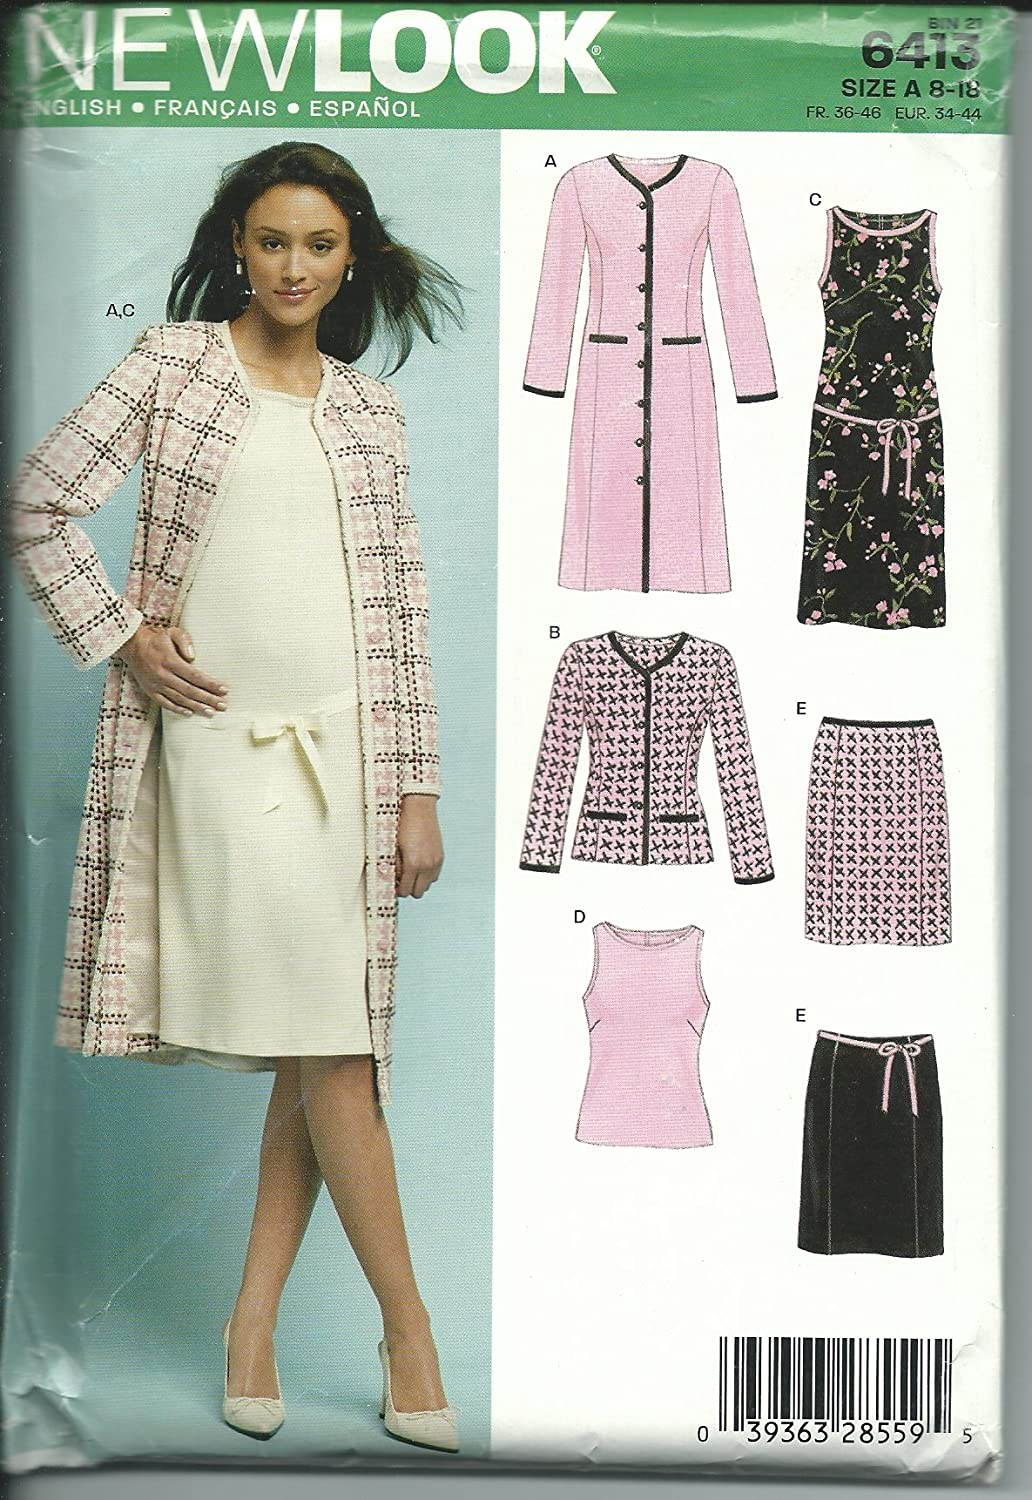 New Look 6413A Sewing Pattern Misses Jacket Skirt Top Size 8-18 by New Look   B00CXMAY5O